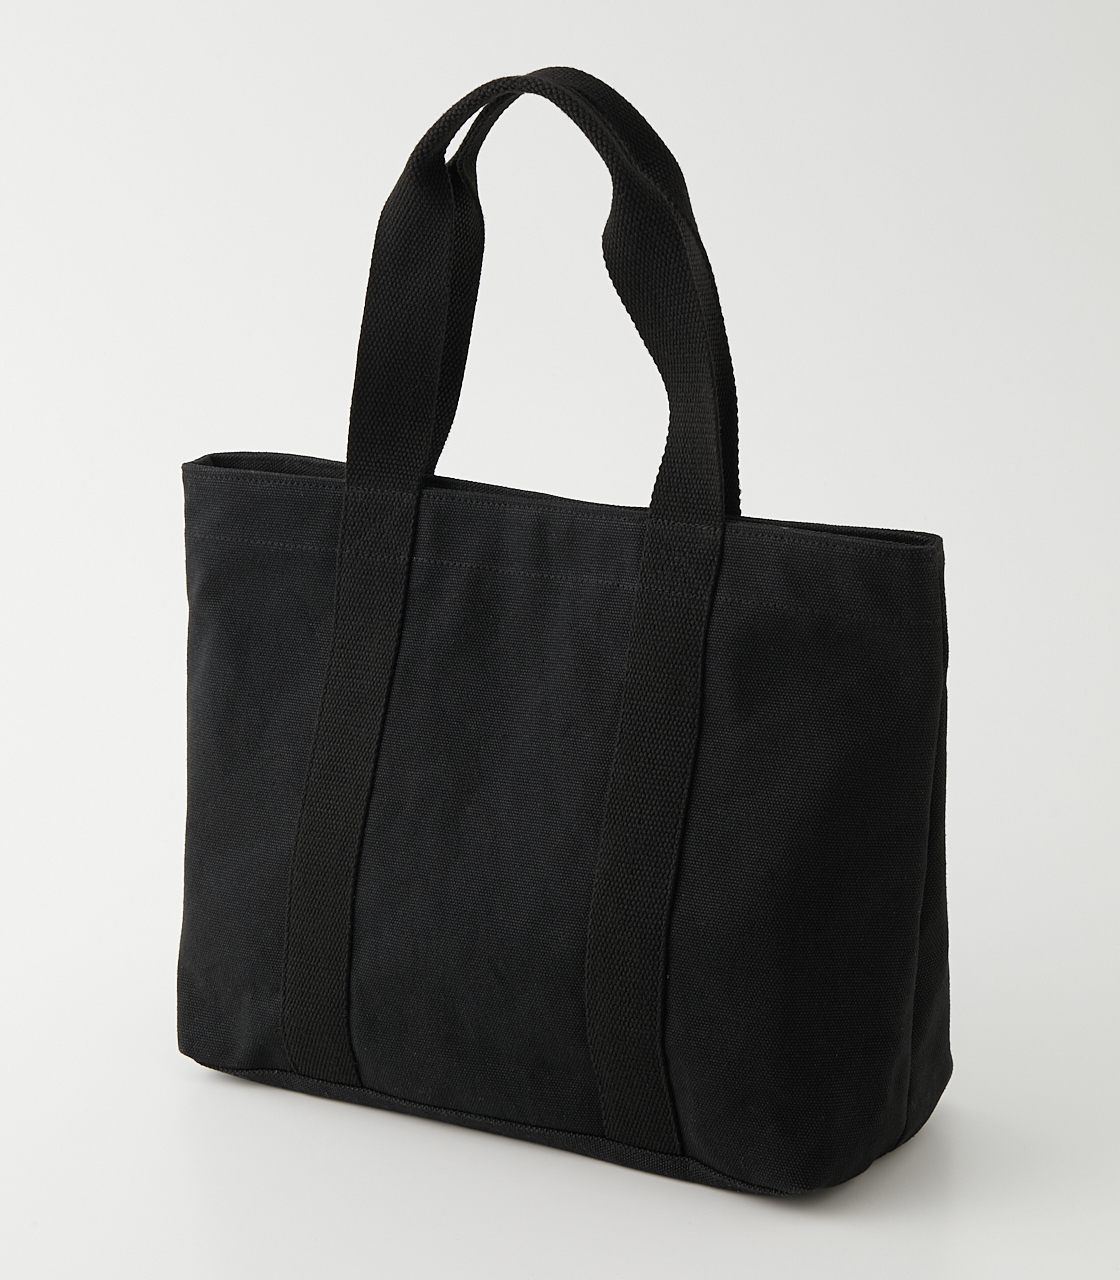 CANVAS TOTE BAG/キャンバストートバッグ 詳細画像 BLK 3